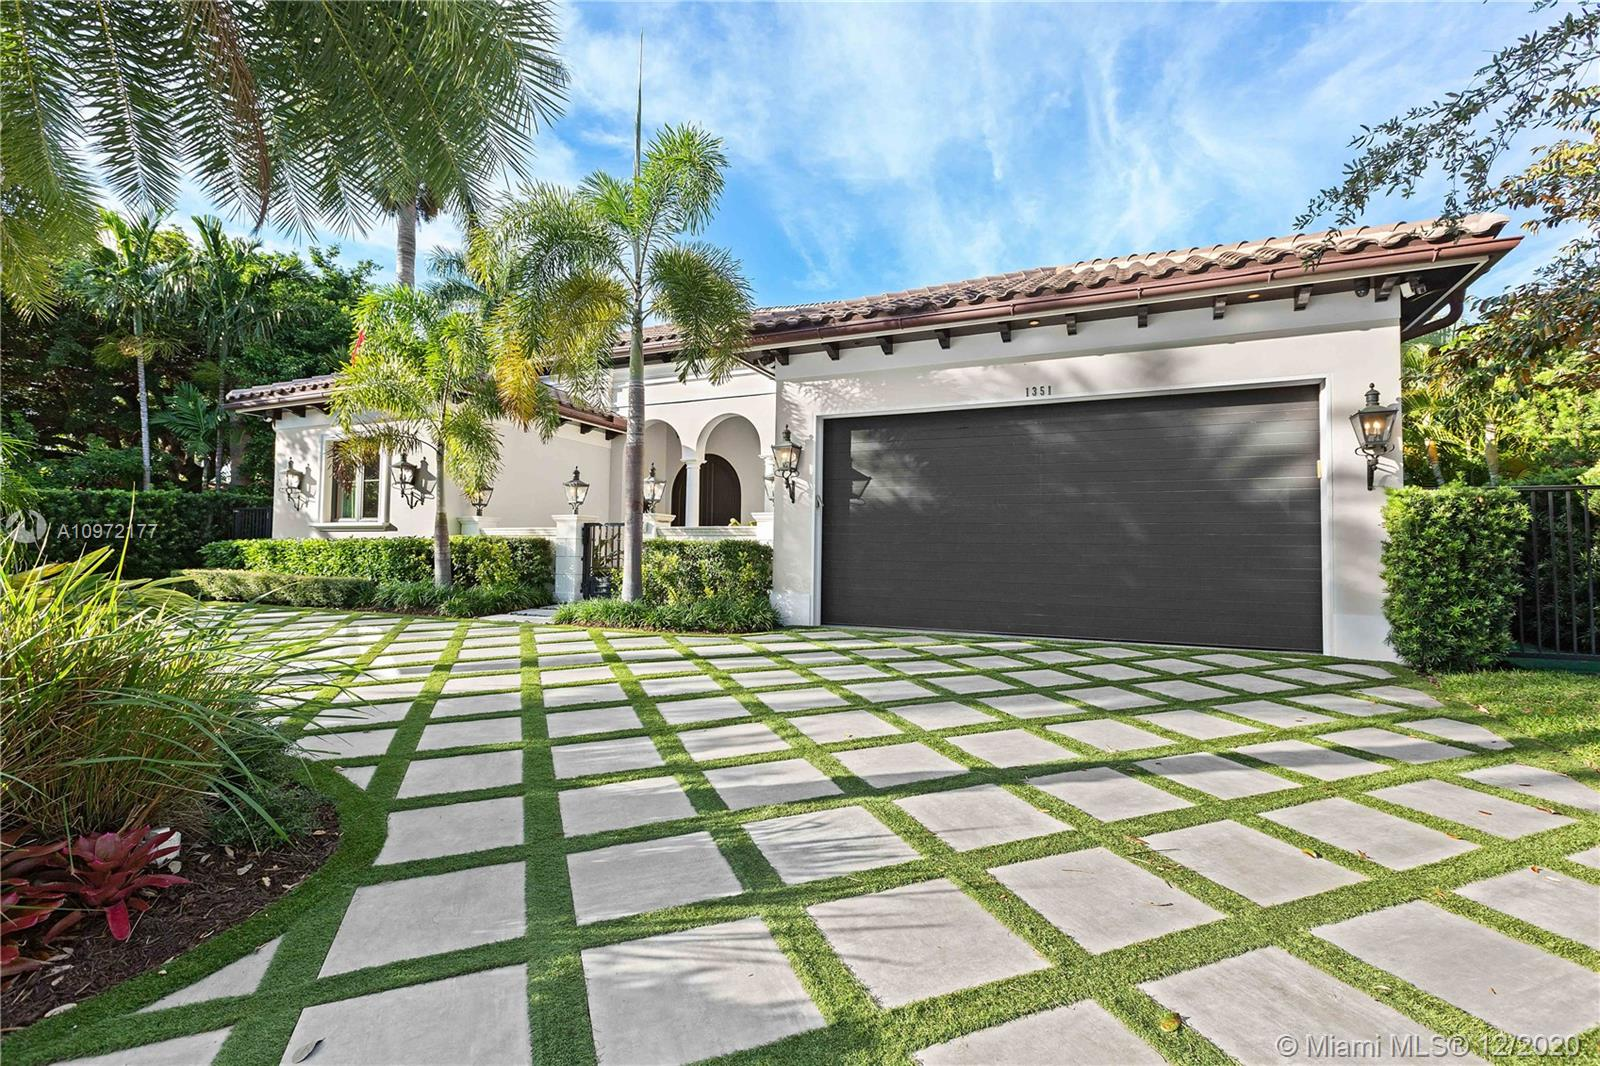 Fabulous custom built home in Bay Harbor... This smart home has everything; 5-bedrooms, 6-baths, each bedroom has en-suite bathroom, bright open floor plan with 14-foot coffered ceilings, gas stove, kosher kitchen, indoor laundry, & security cameras to start. The home has a circular driveway and a gated backyard with a covered patio, BBQ area, pool and hot-tub with smart controls. Impact windows, 2-car garage with epoxy floors. In an amazing neighborhood. This market is hot, don't let someone else beat you to it.